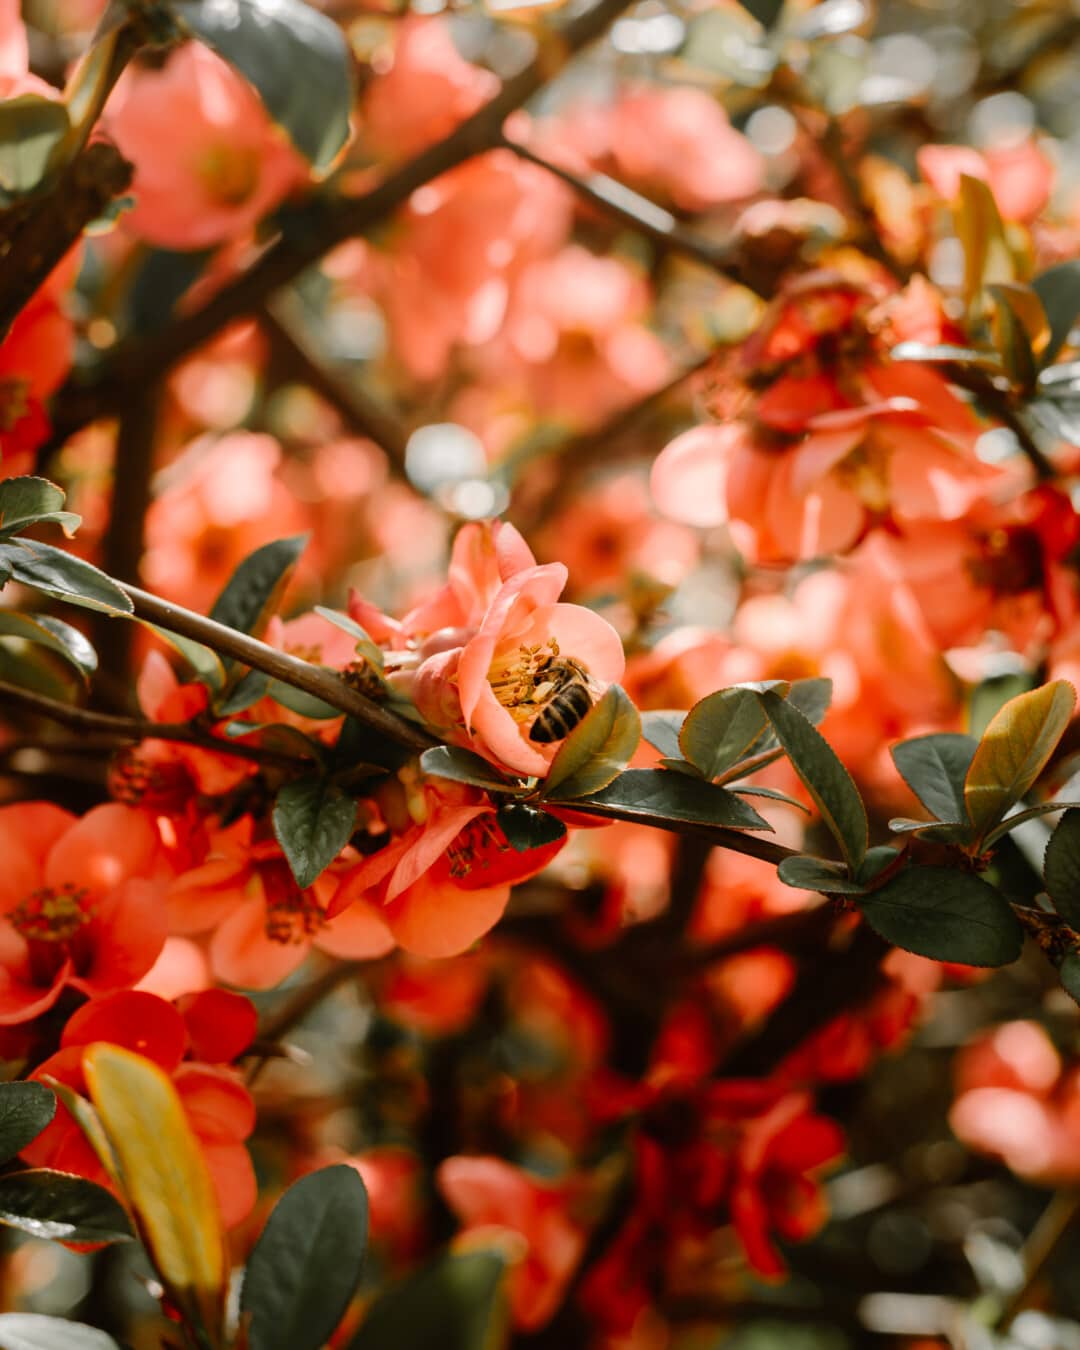 insect, bee, honeybee, pollination, bush, branches, spring time, shrub, branch, leaf